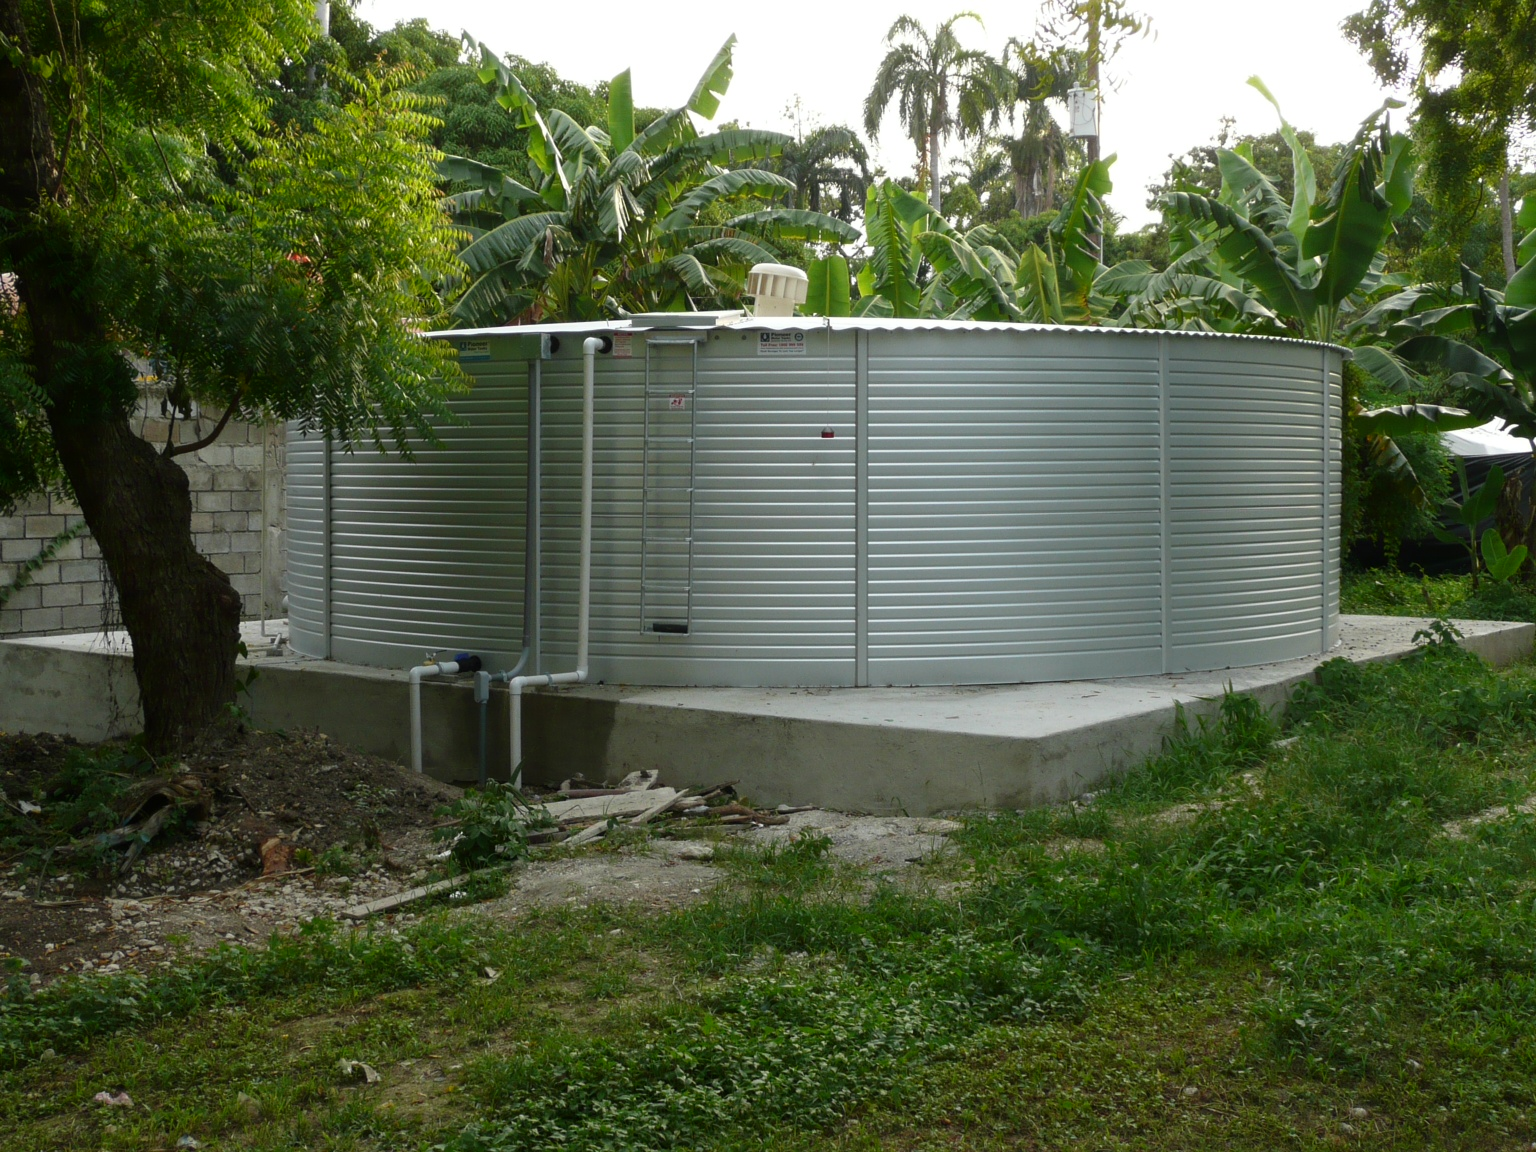 50,000 Gallon Storage tank for treated, pure water at Hopital Adventiste d'Haiti in Port-Au-Prince.